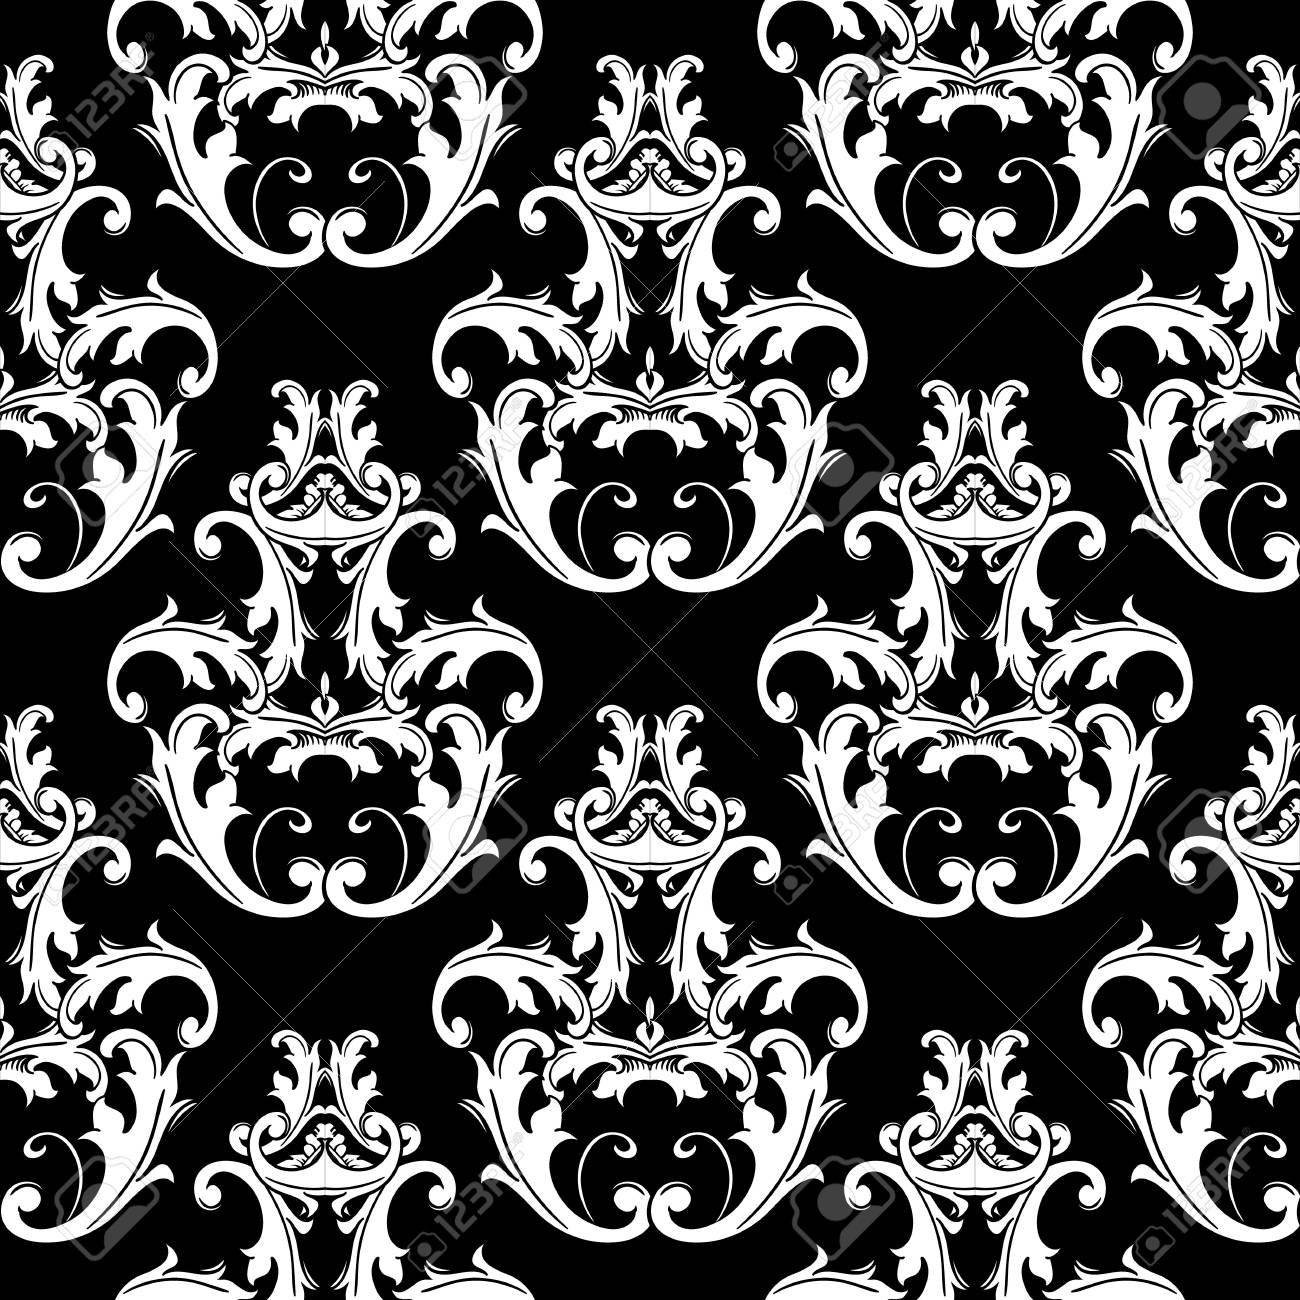 Damask black white seamless pattern floral background wallpaper illustration with vintage antique flowers scroll